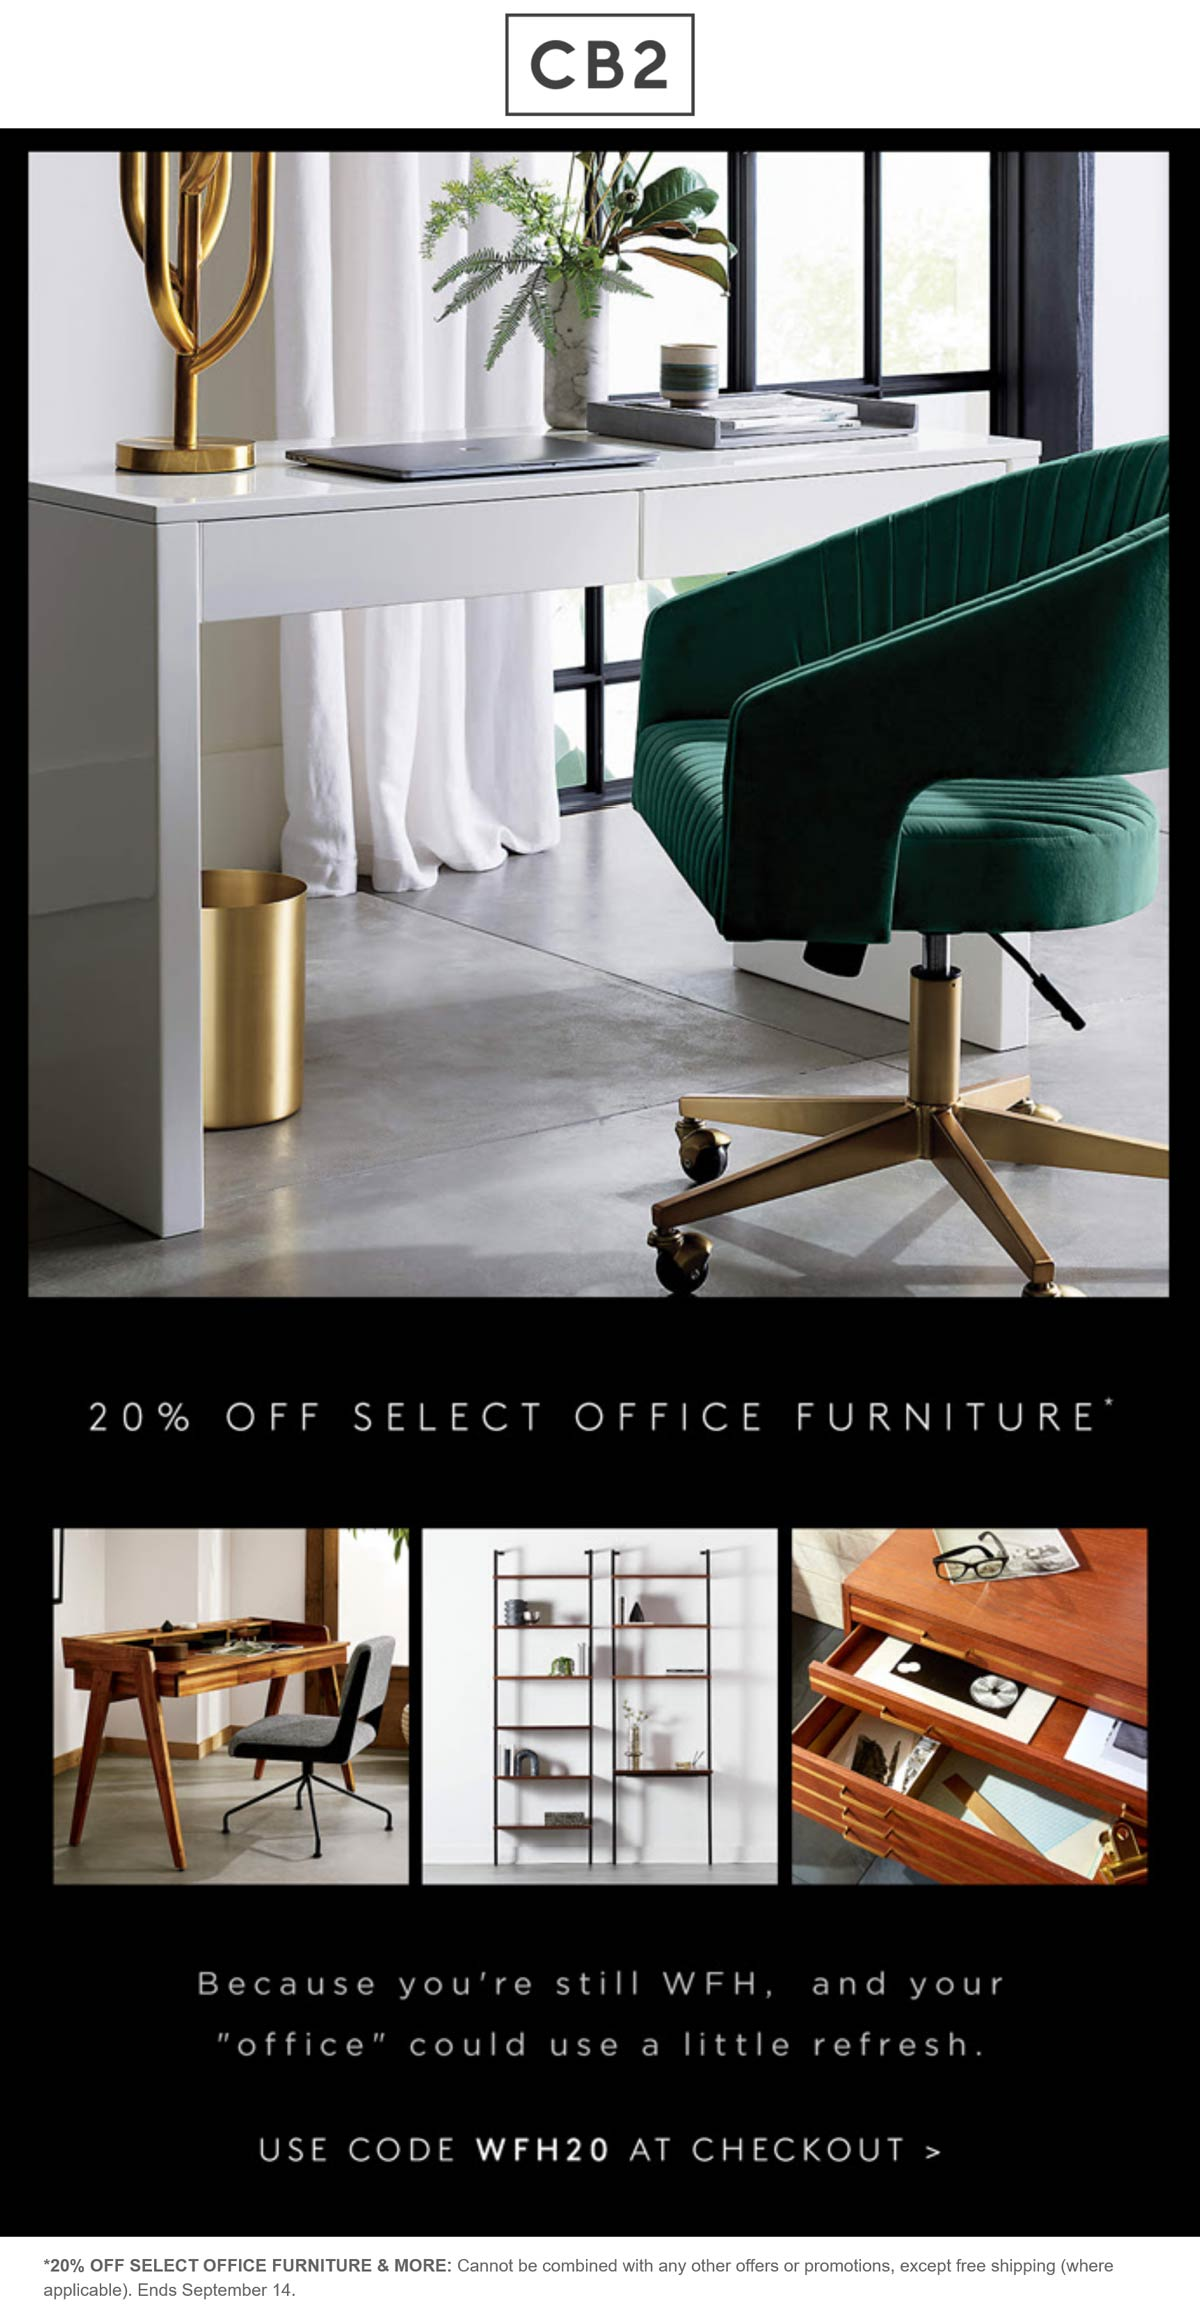 CB2 stores Coupon  20% off office furniture today at Crate & Barrel CB2 via promo code WFH20 #cb2